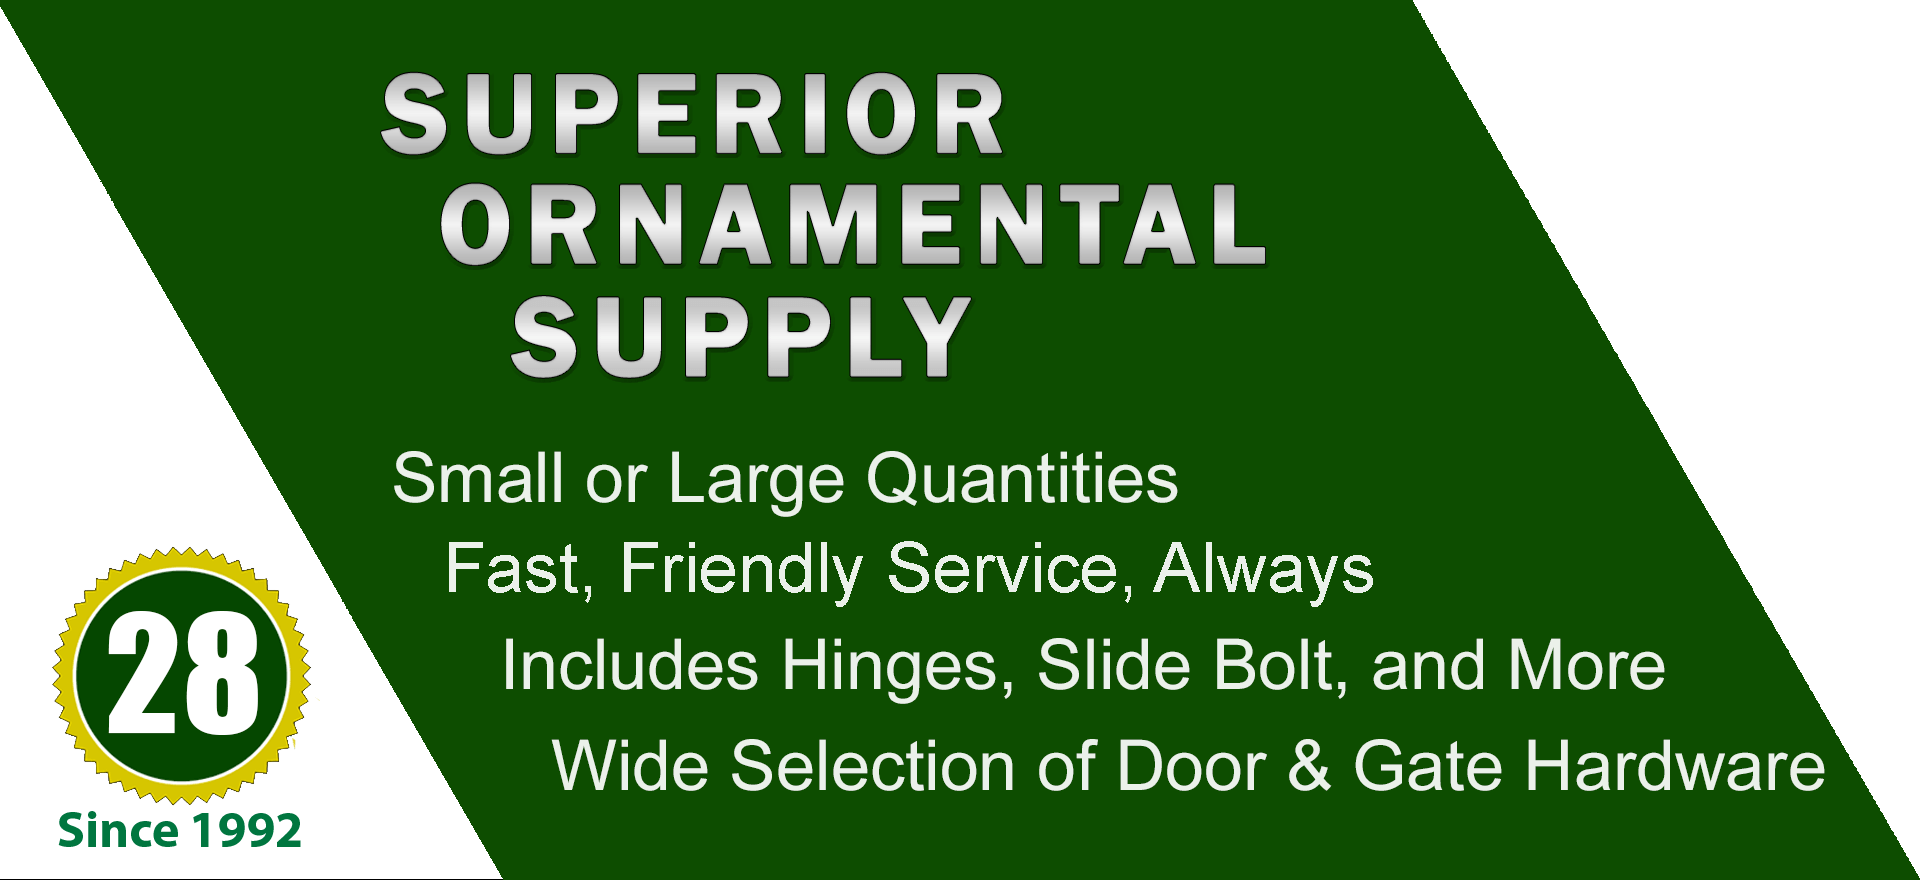 We stock a wide variety of hinges, including heavy duty and grease fittings.   Wide variety and Excellent Quality from Superior Ornamental Supply.